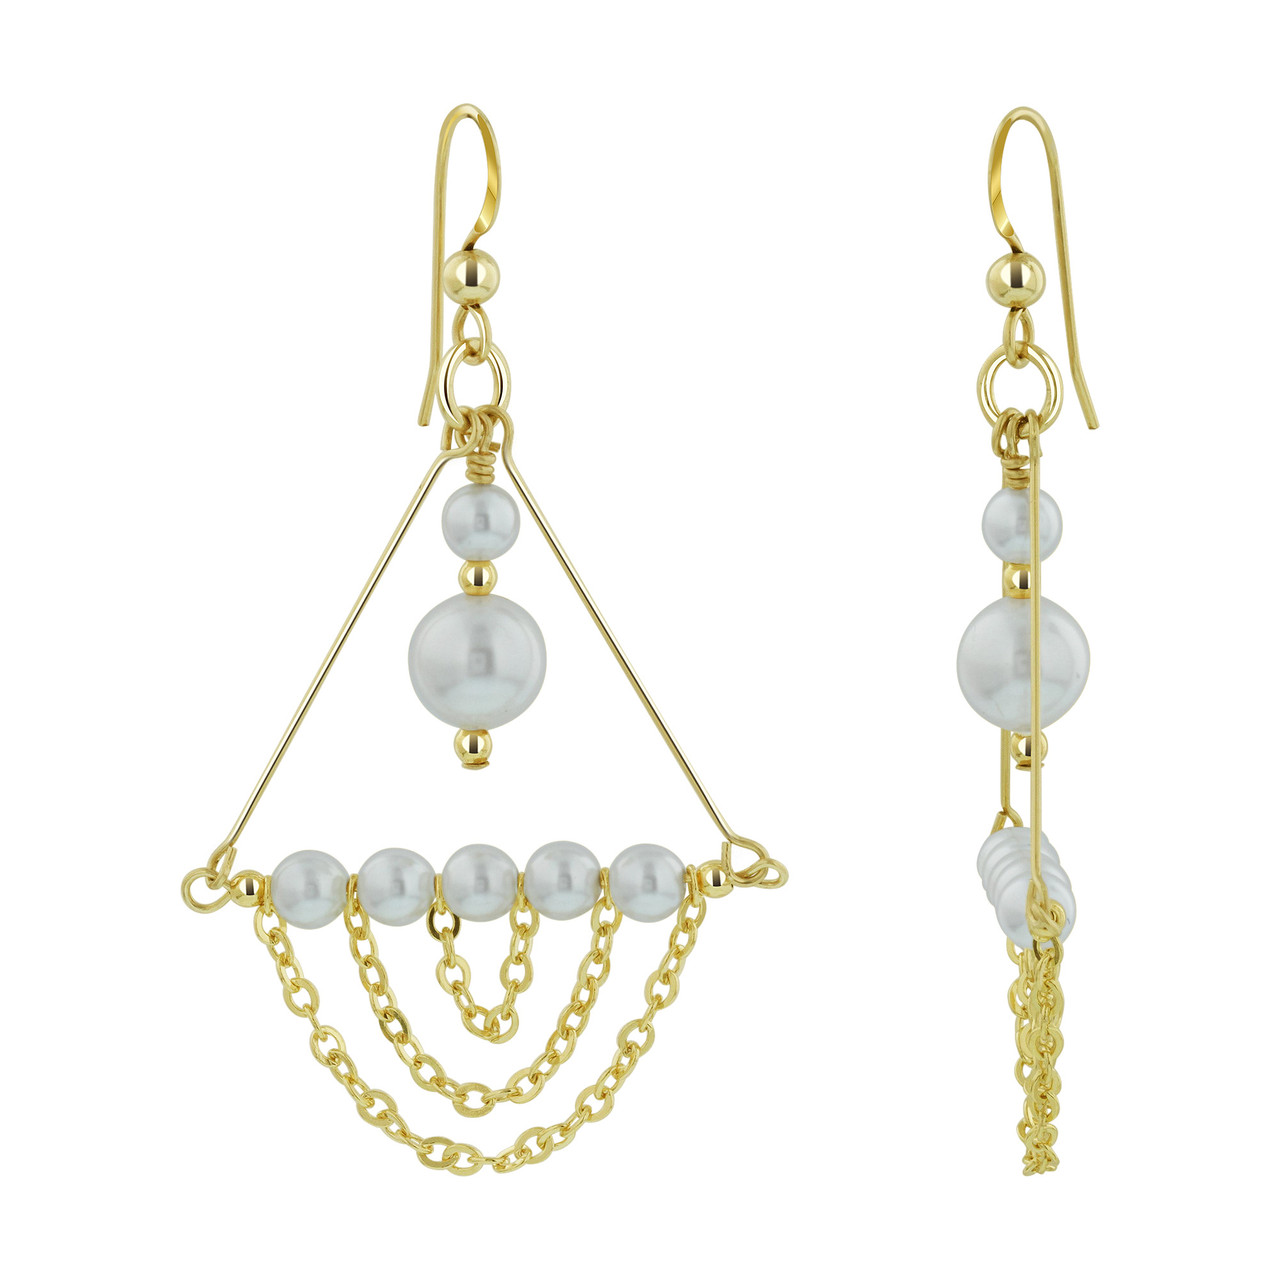 14K Gold Filled Faux White Pearl Chandelier Drop Earrings